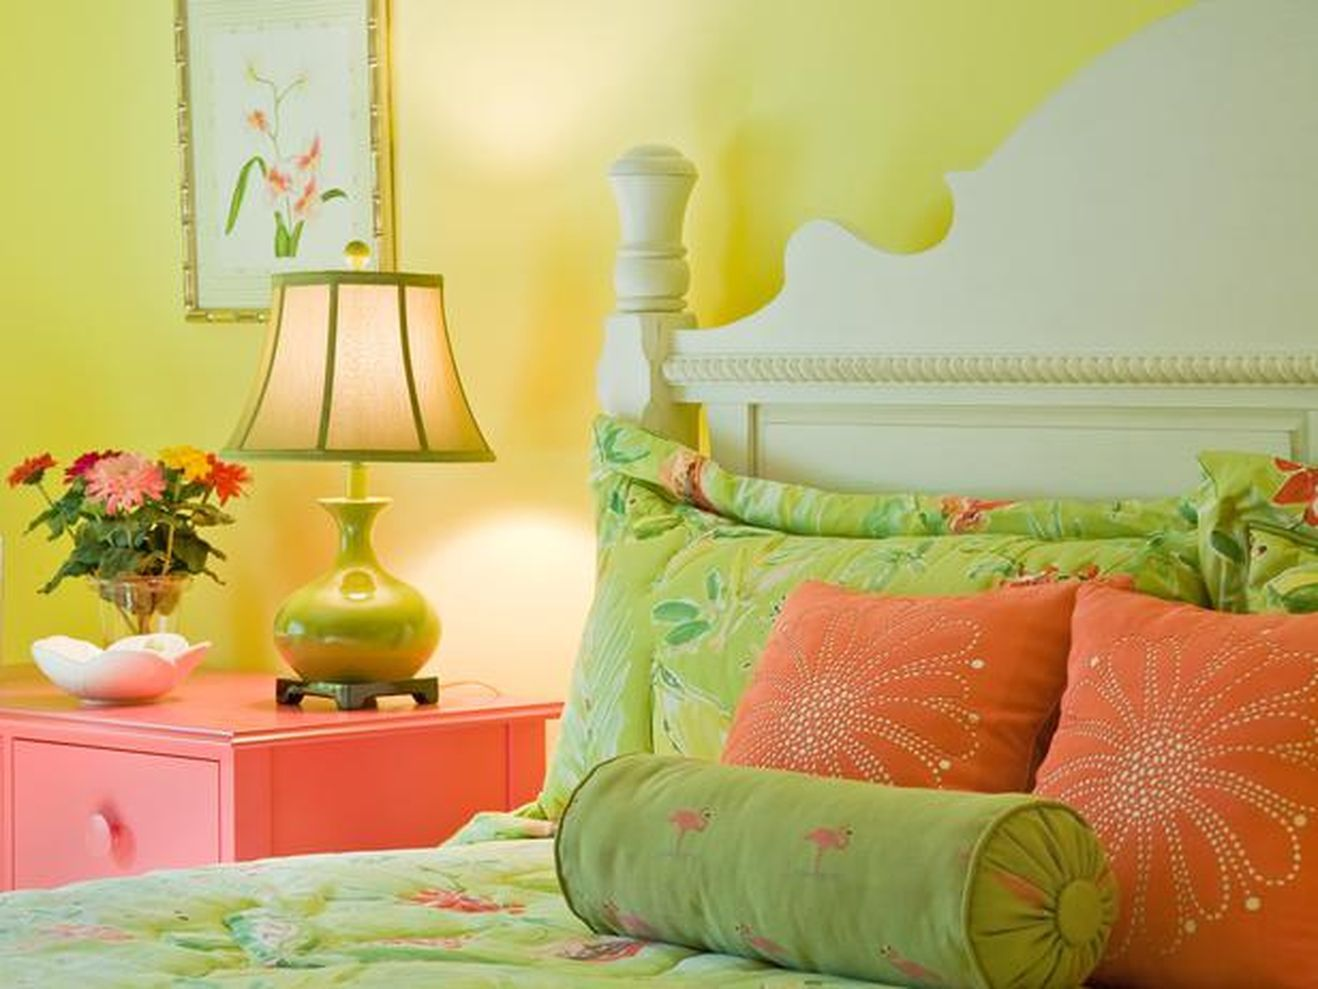 86 Cute Bedroom Design Ideas with Pink And Green Walls | Green walls ...